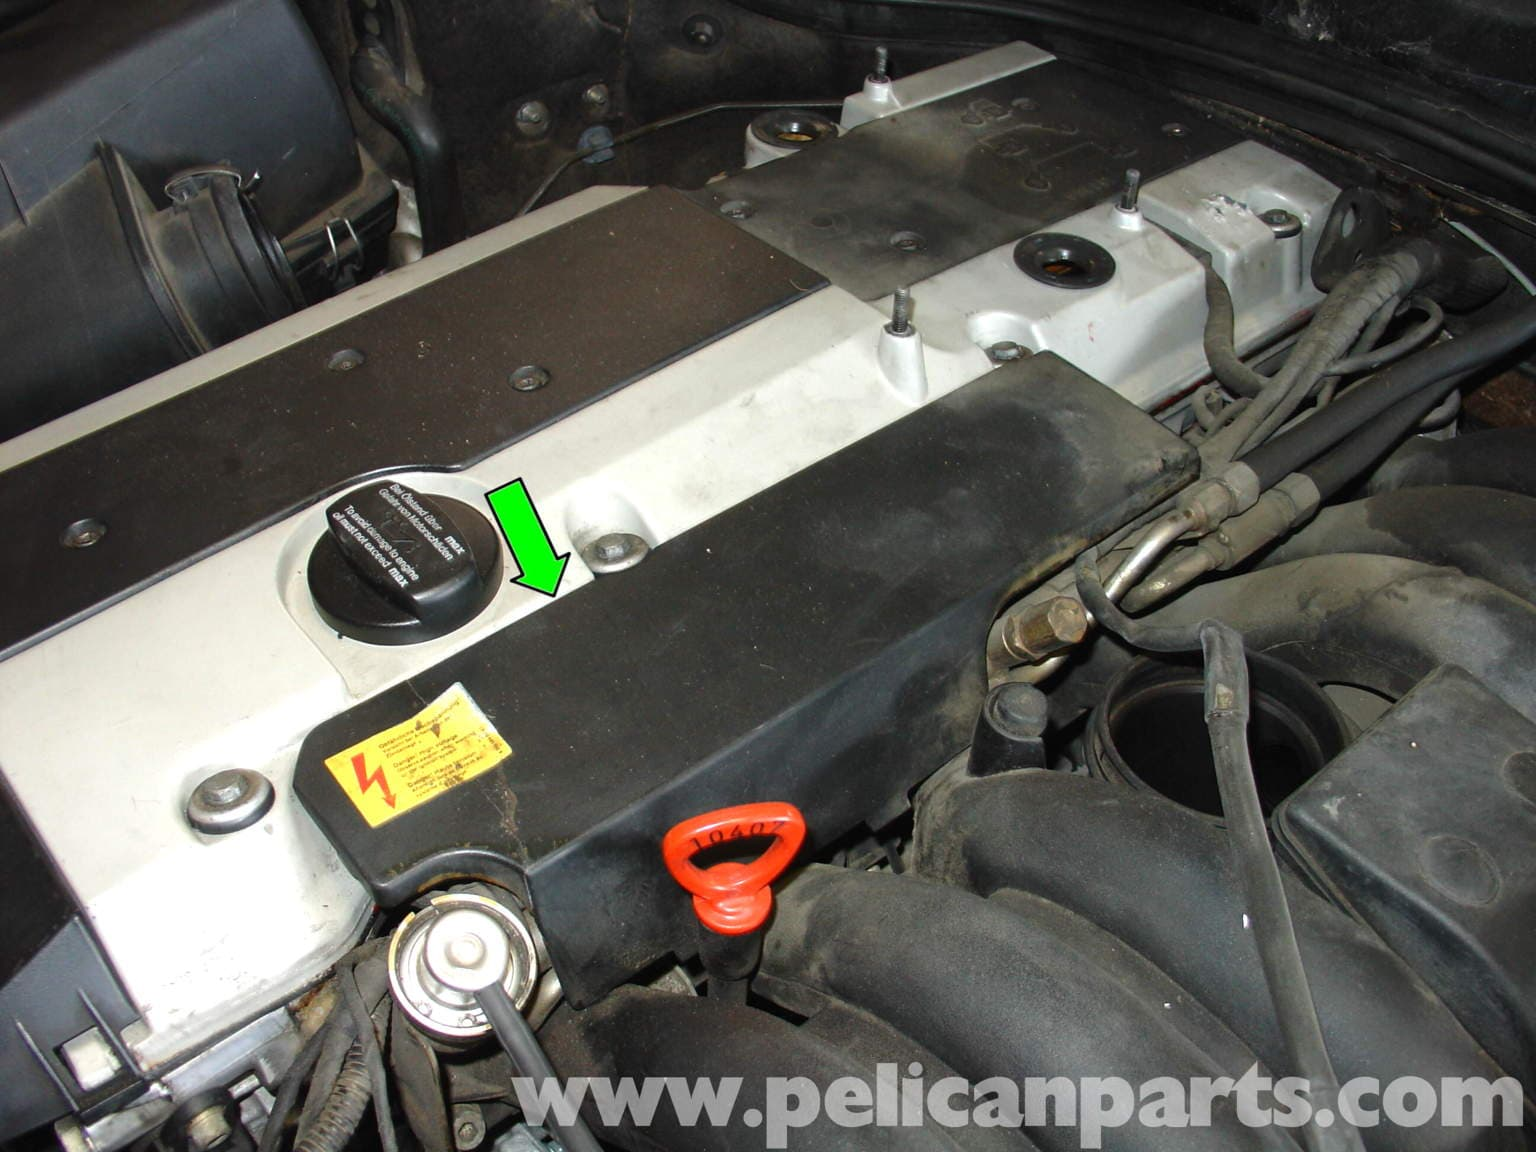 Mercedes Benz W210 Fuel Pressure Regulator Replacement 1996 03 Details About W140 Engine Wiring Harness Wires Updated S Large Image